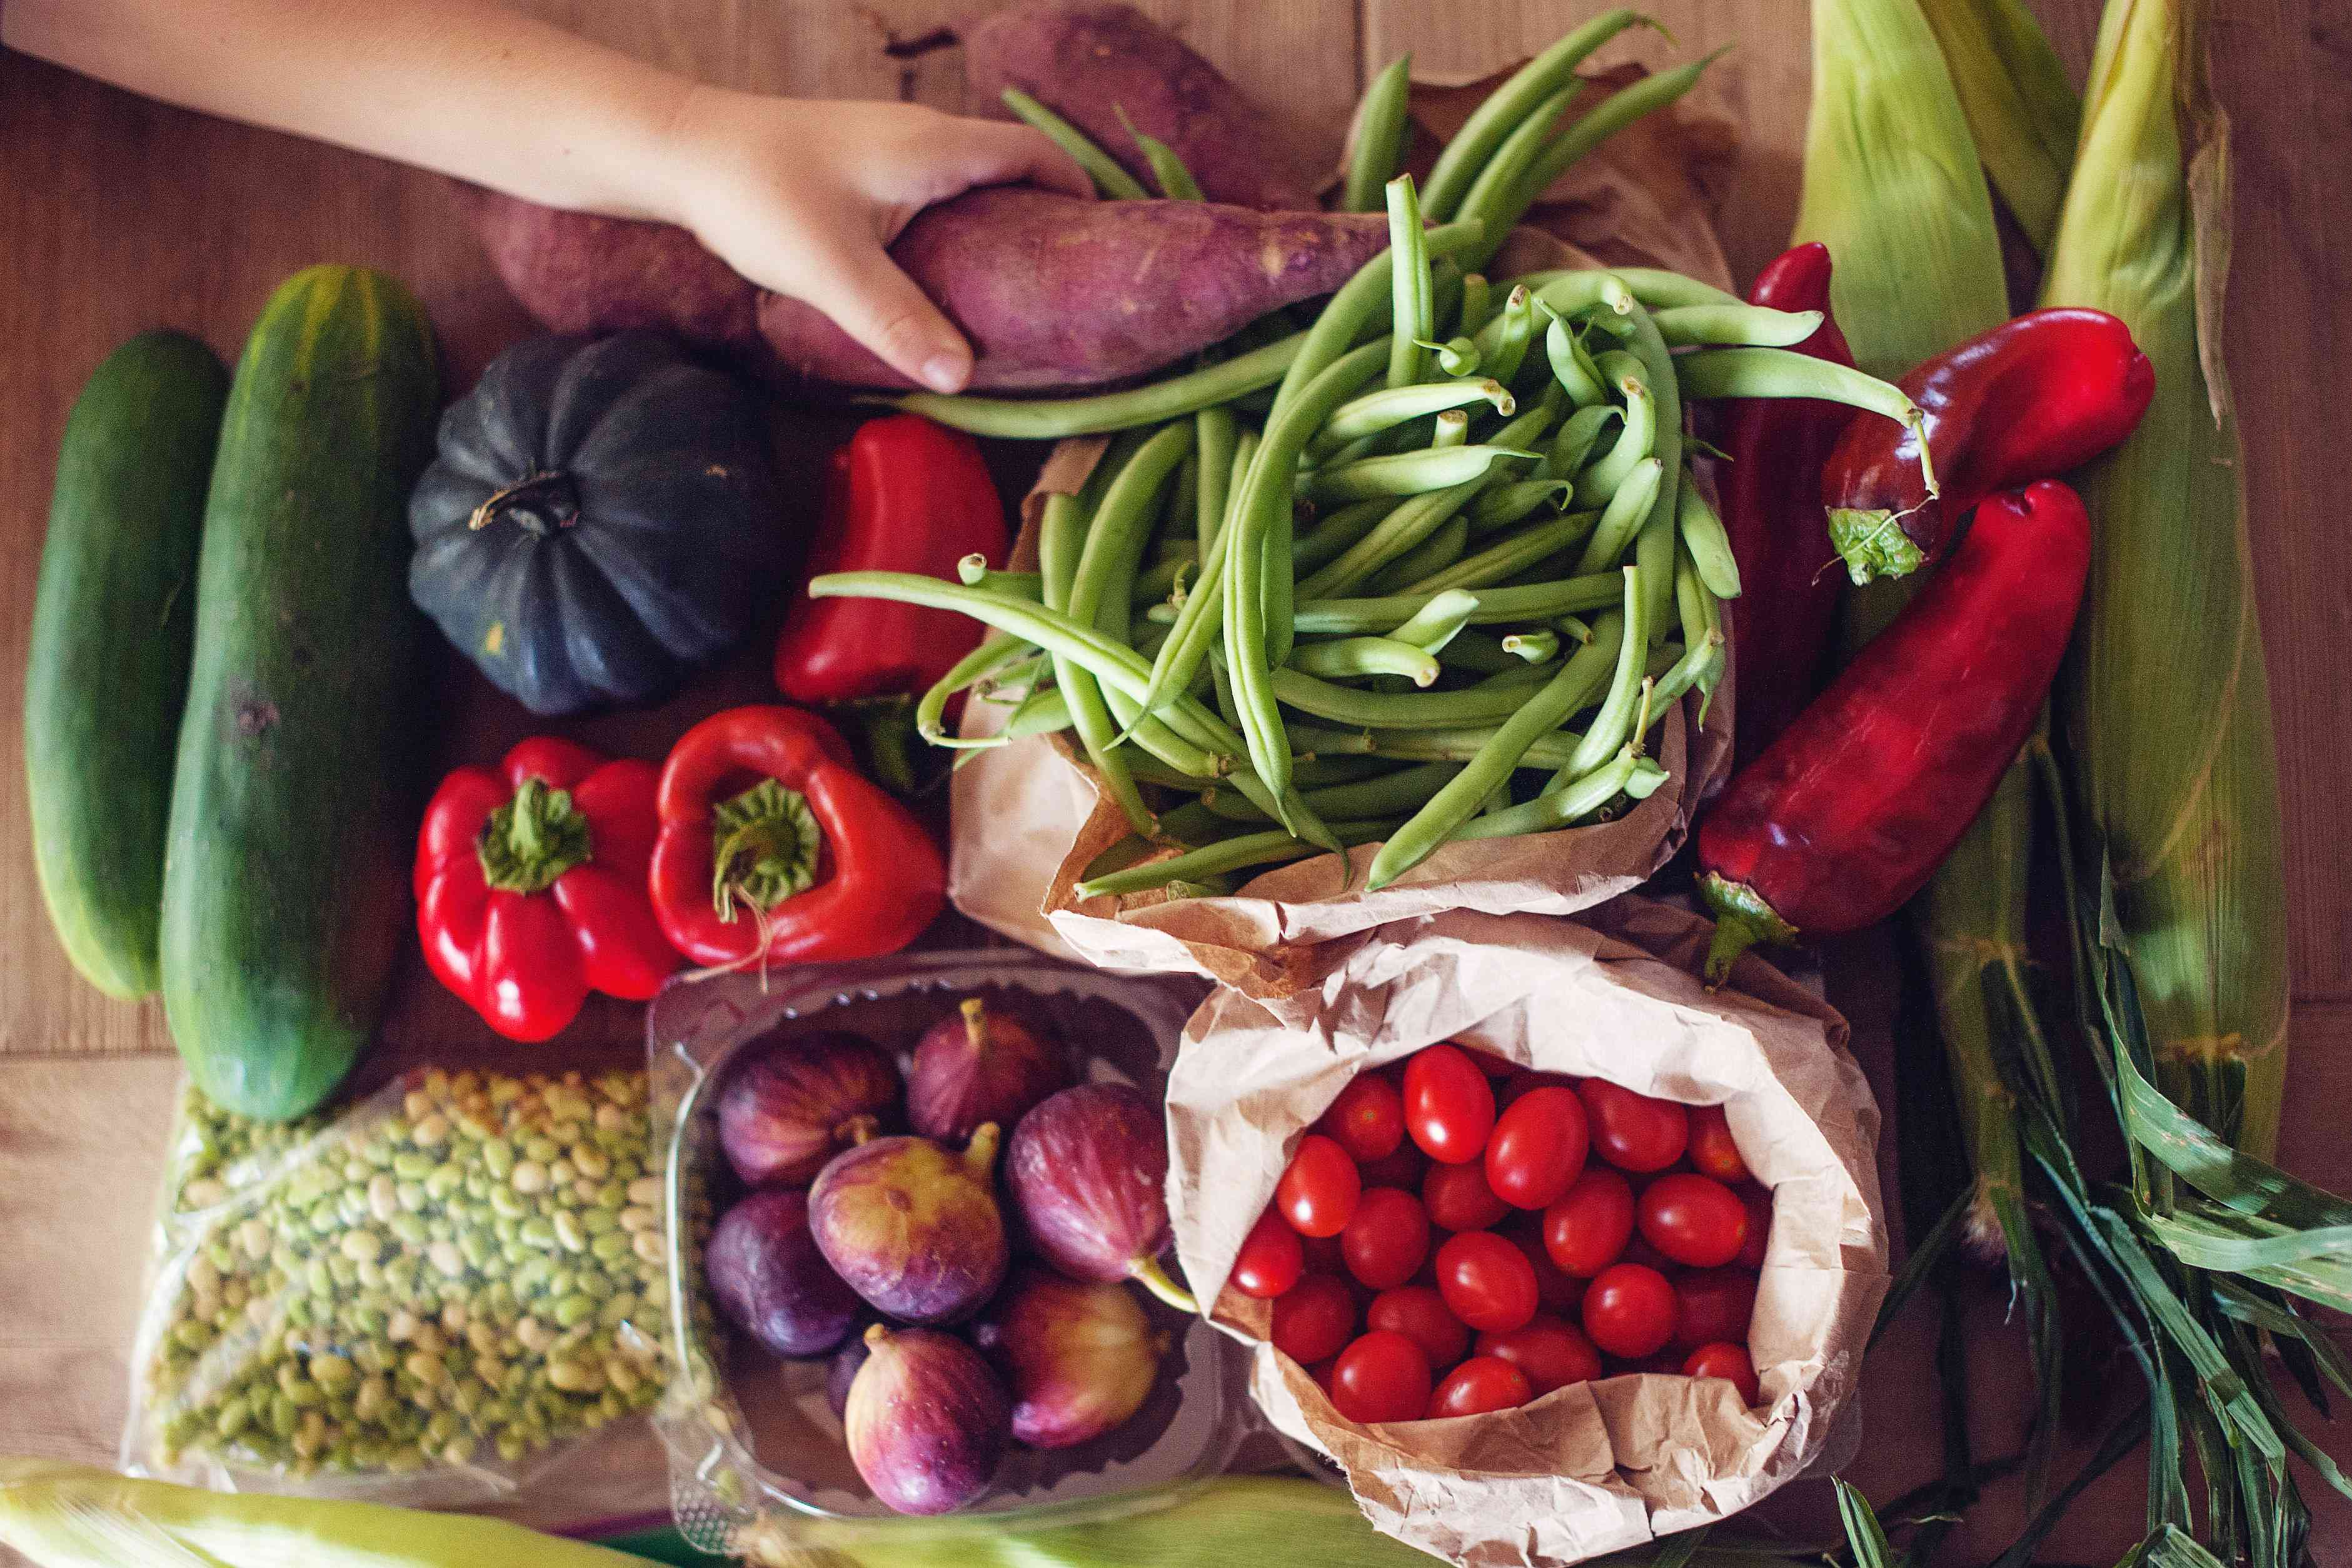 Close-up of hand reaching for fresh vegetables on wooden table